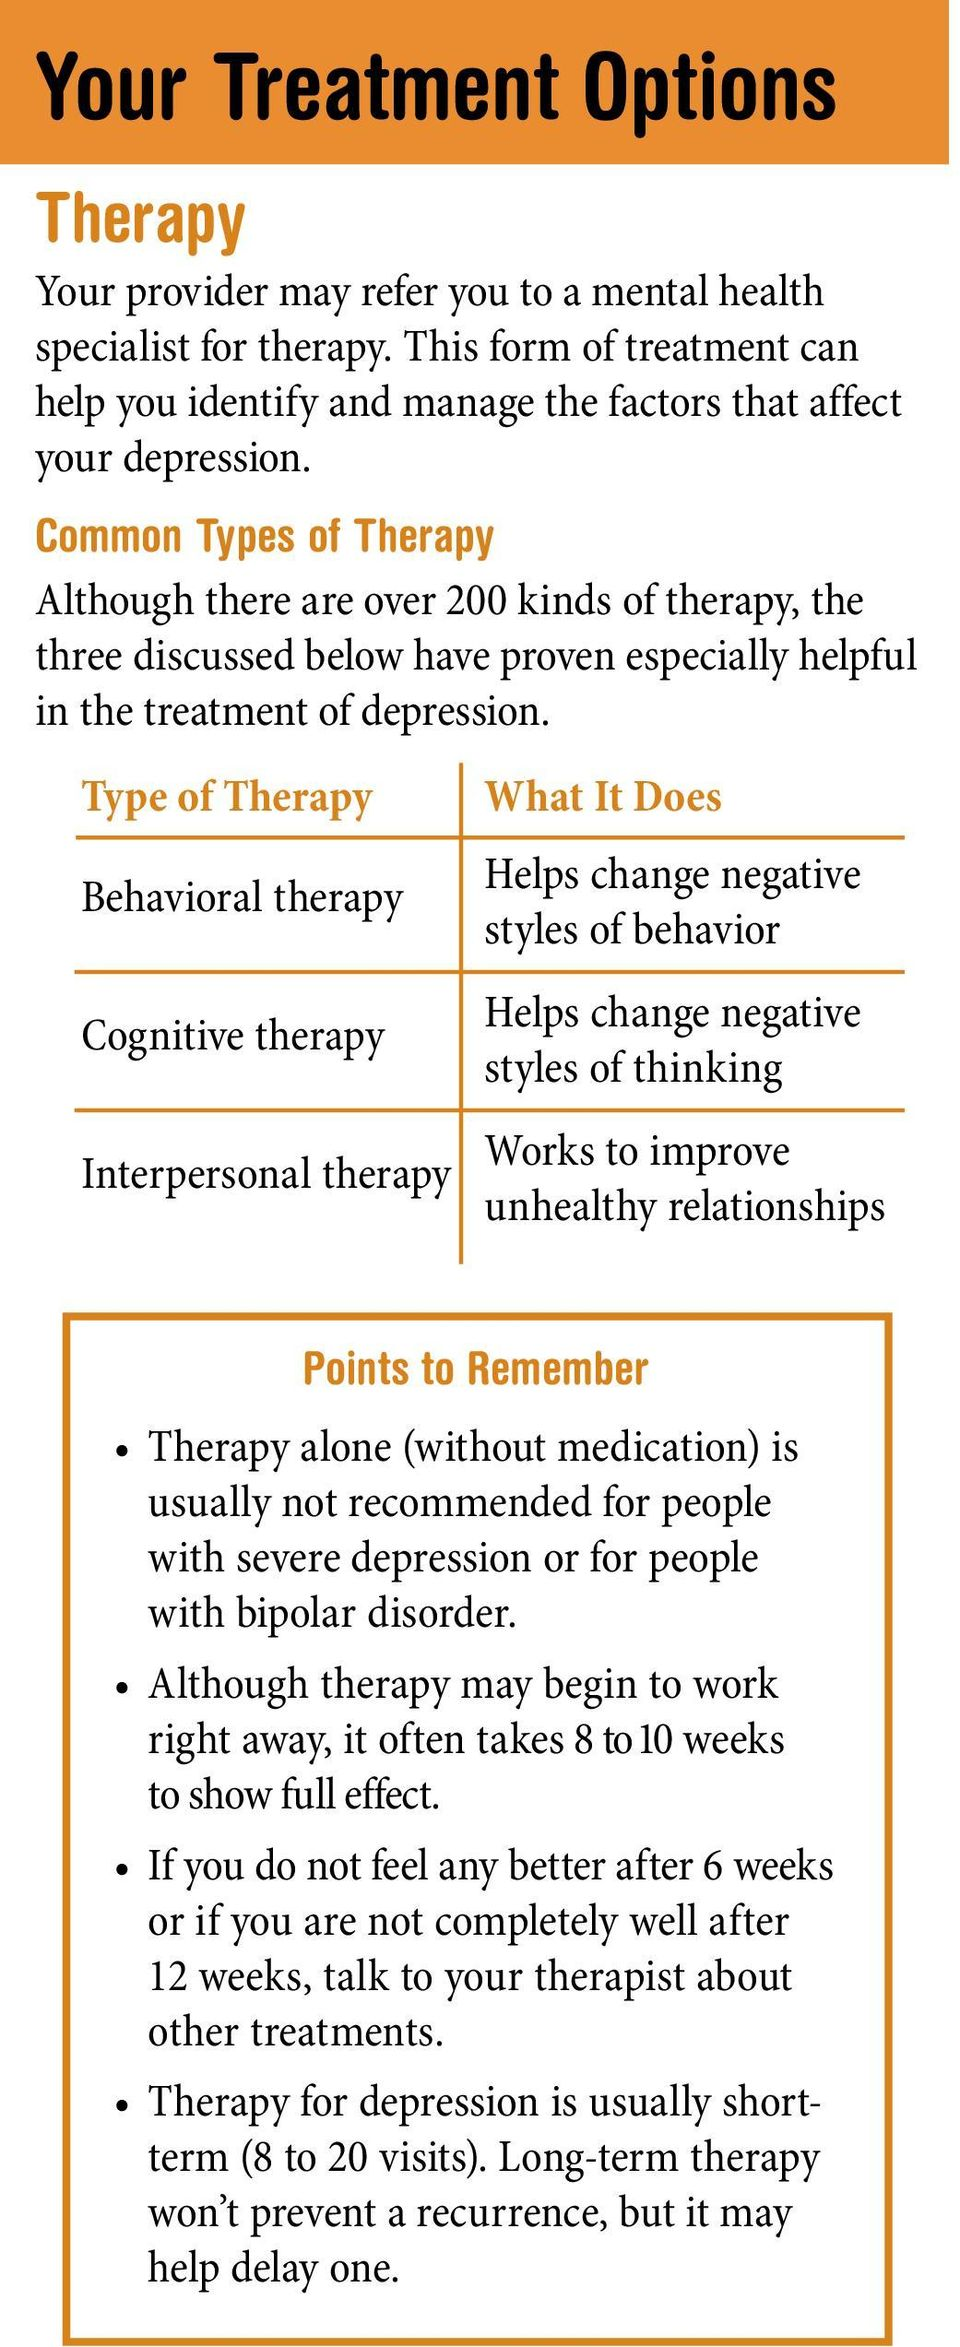 Type of Therapy Behavioral therapy Cognitive therapy Interpersonal therapy What It Does Helps change negative styles of behavior Helps change negative styles of thinking Works to improve unhealthy